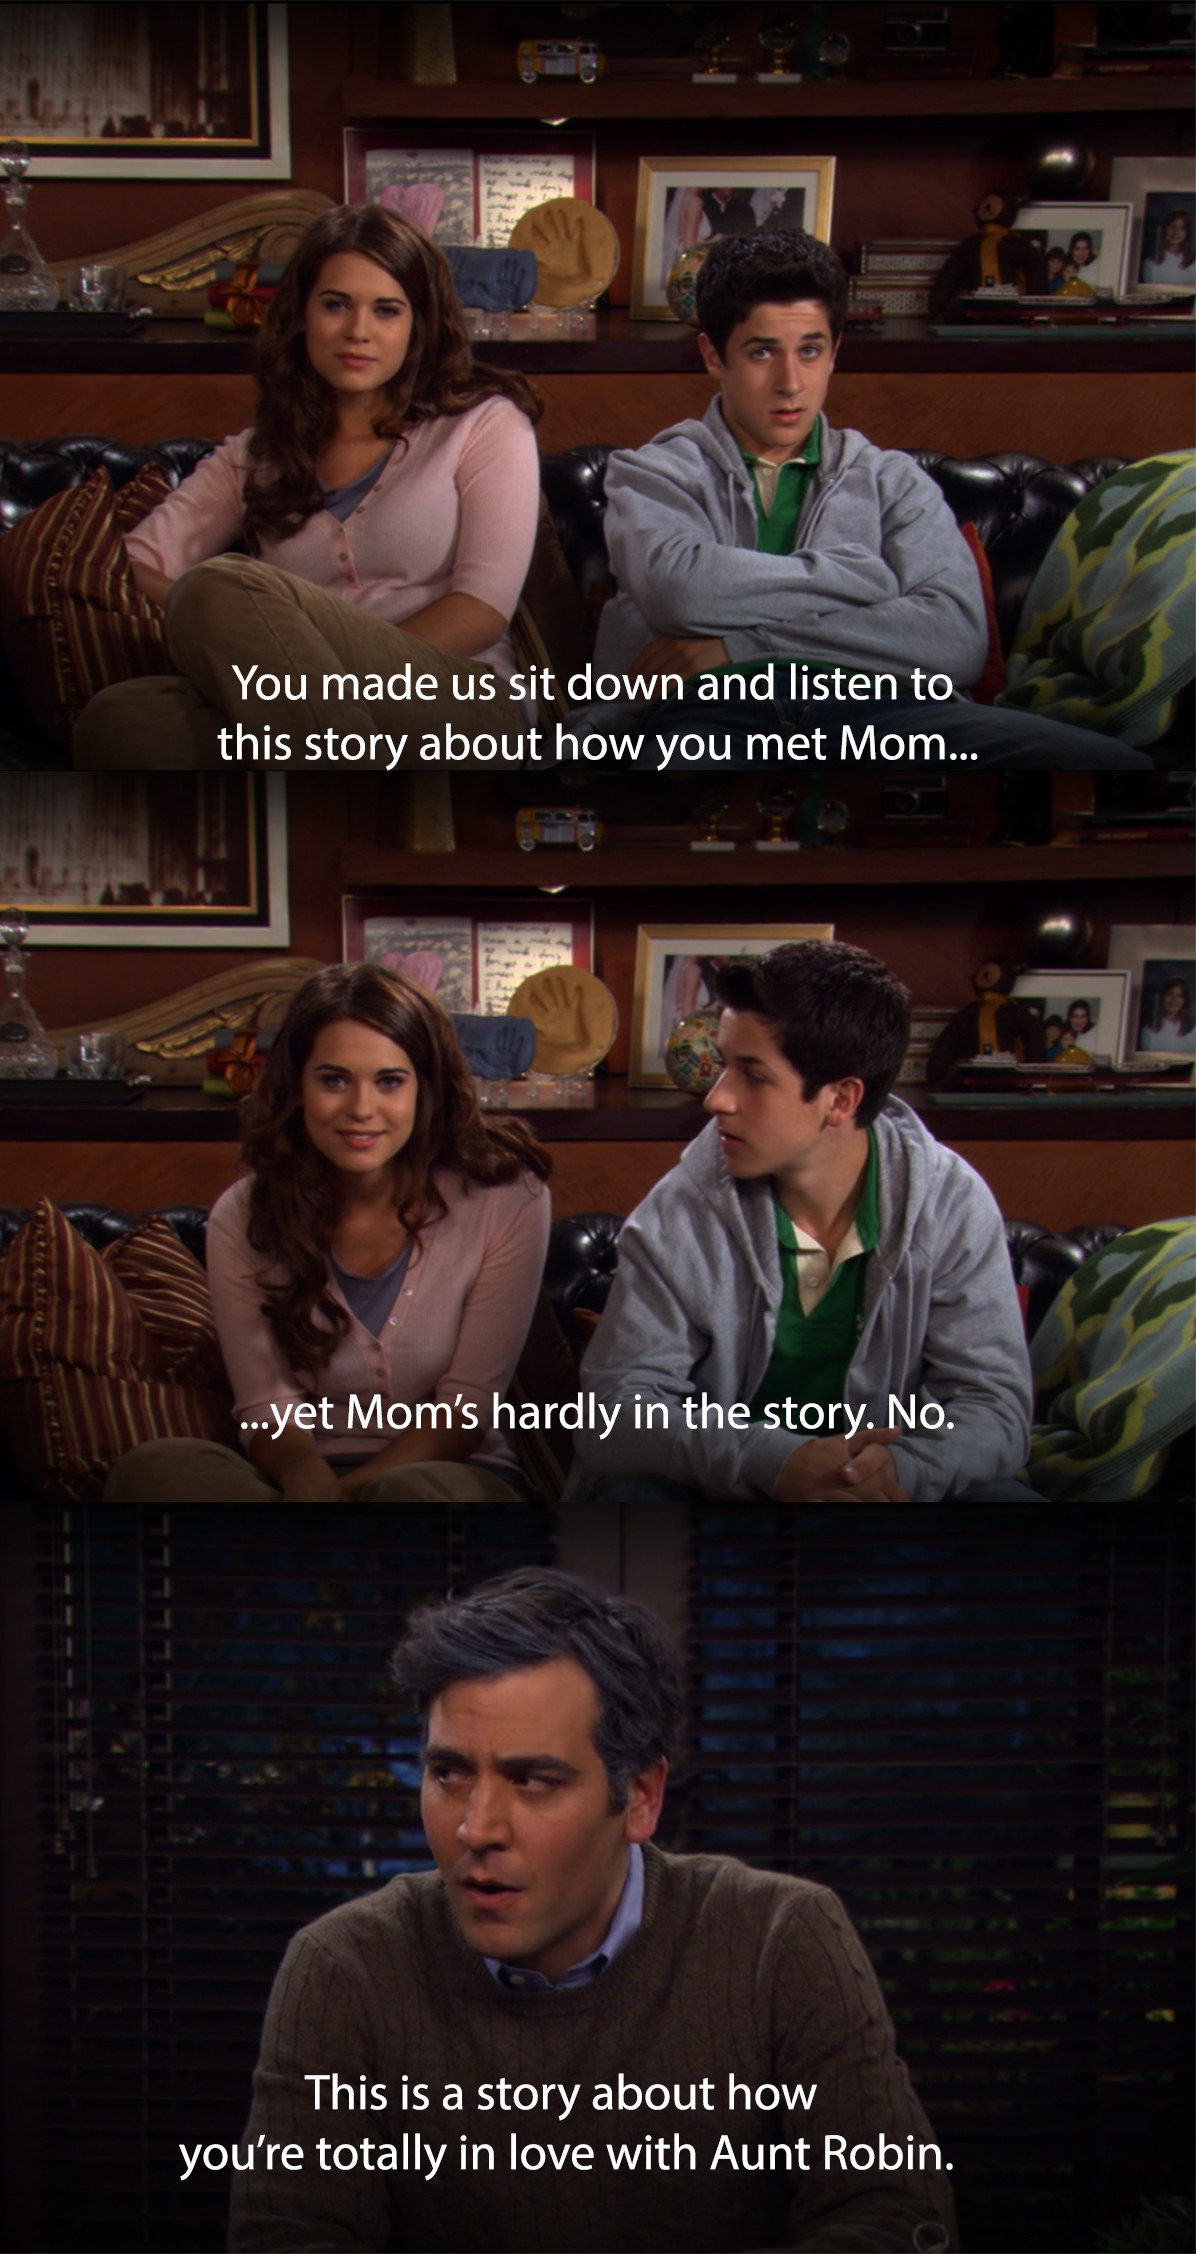 Ted's kids tell him that his story was actually about how much he loves Robin